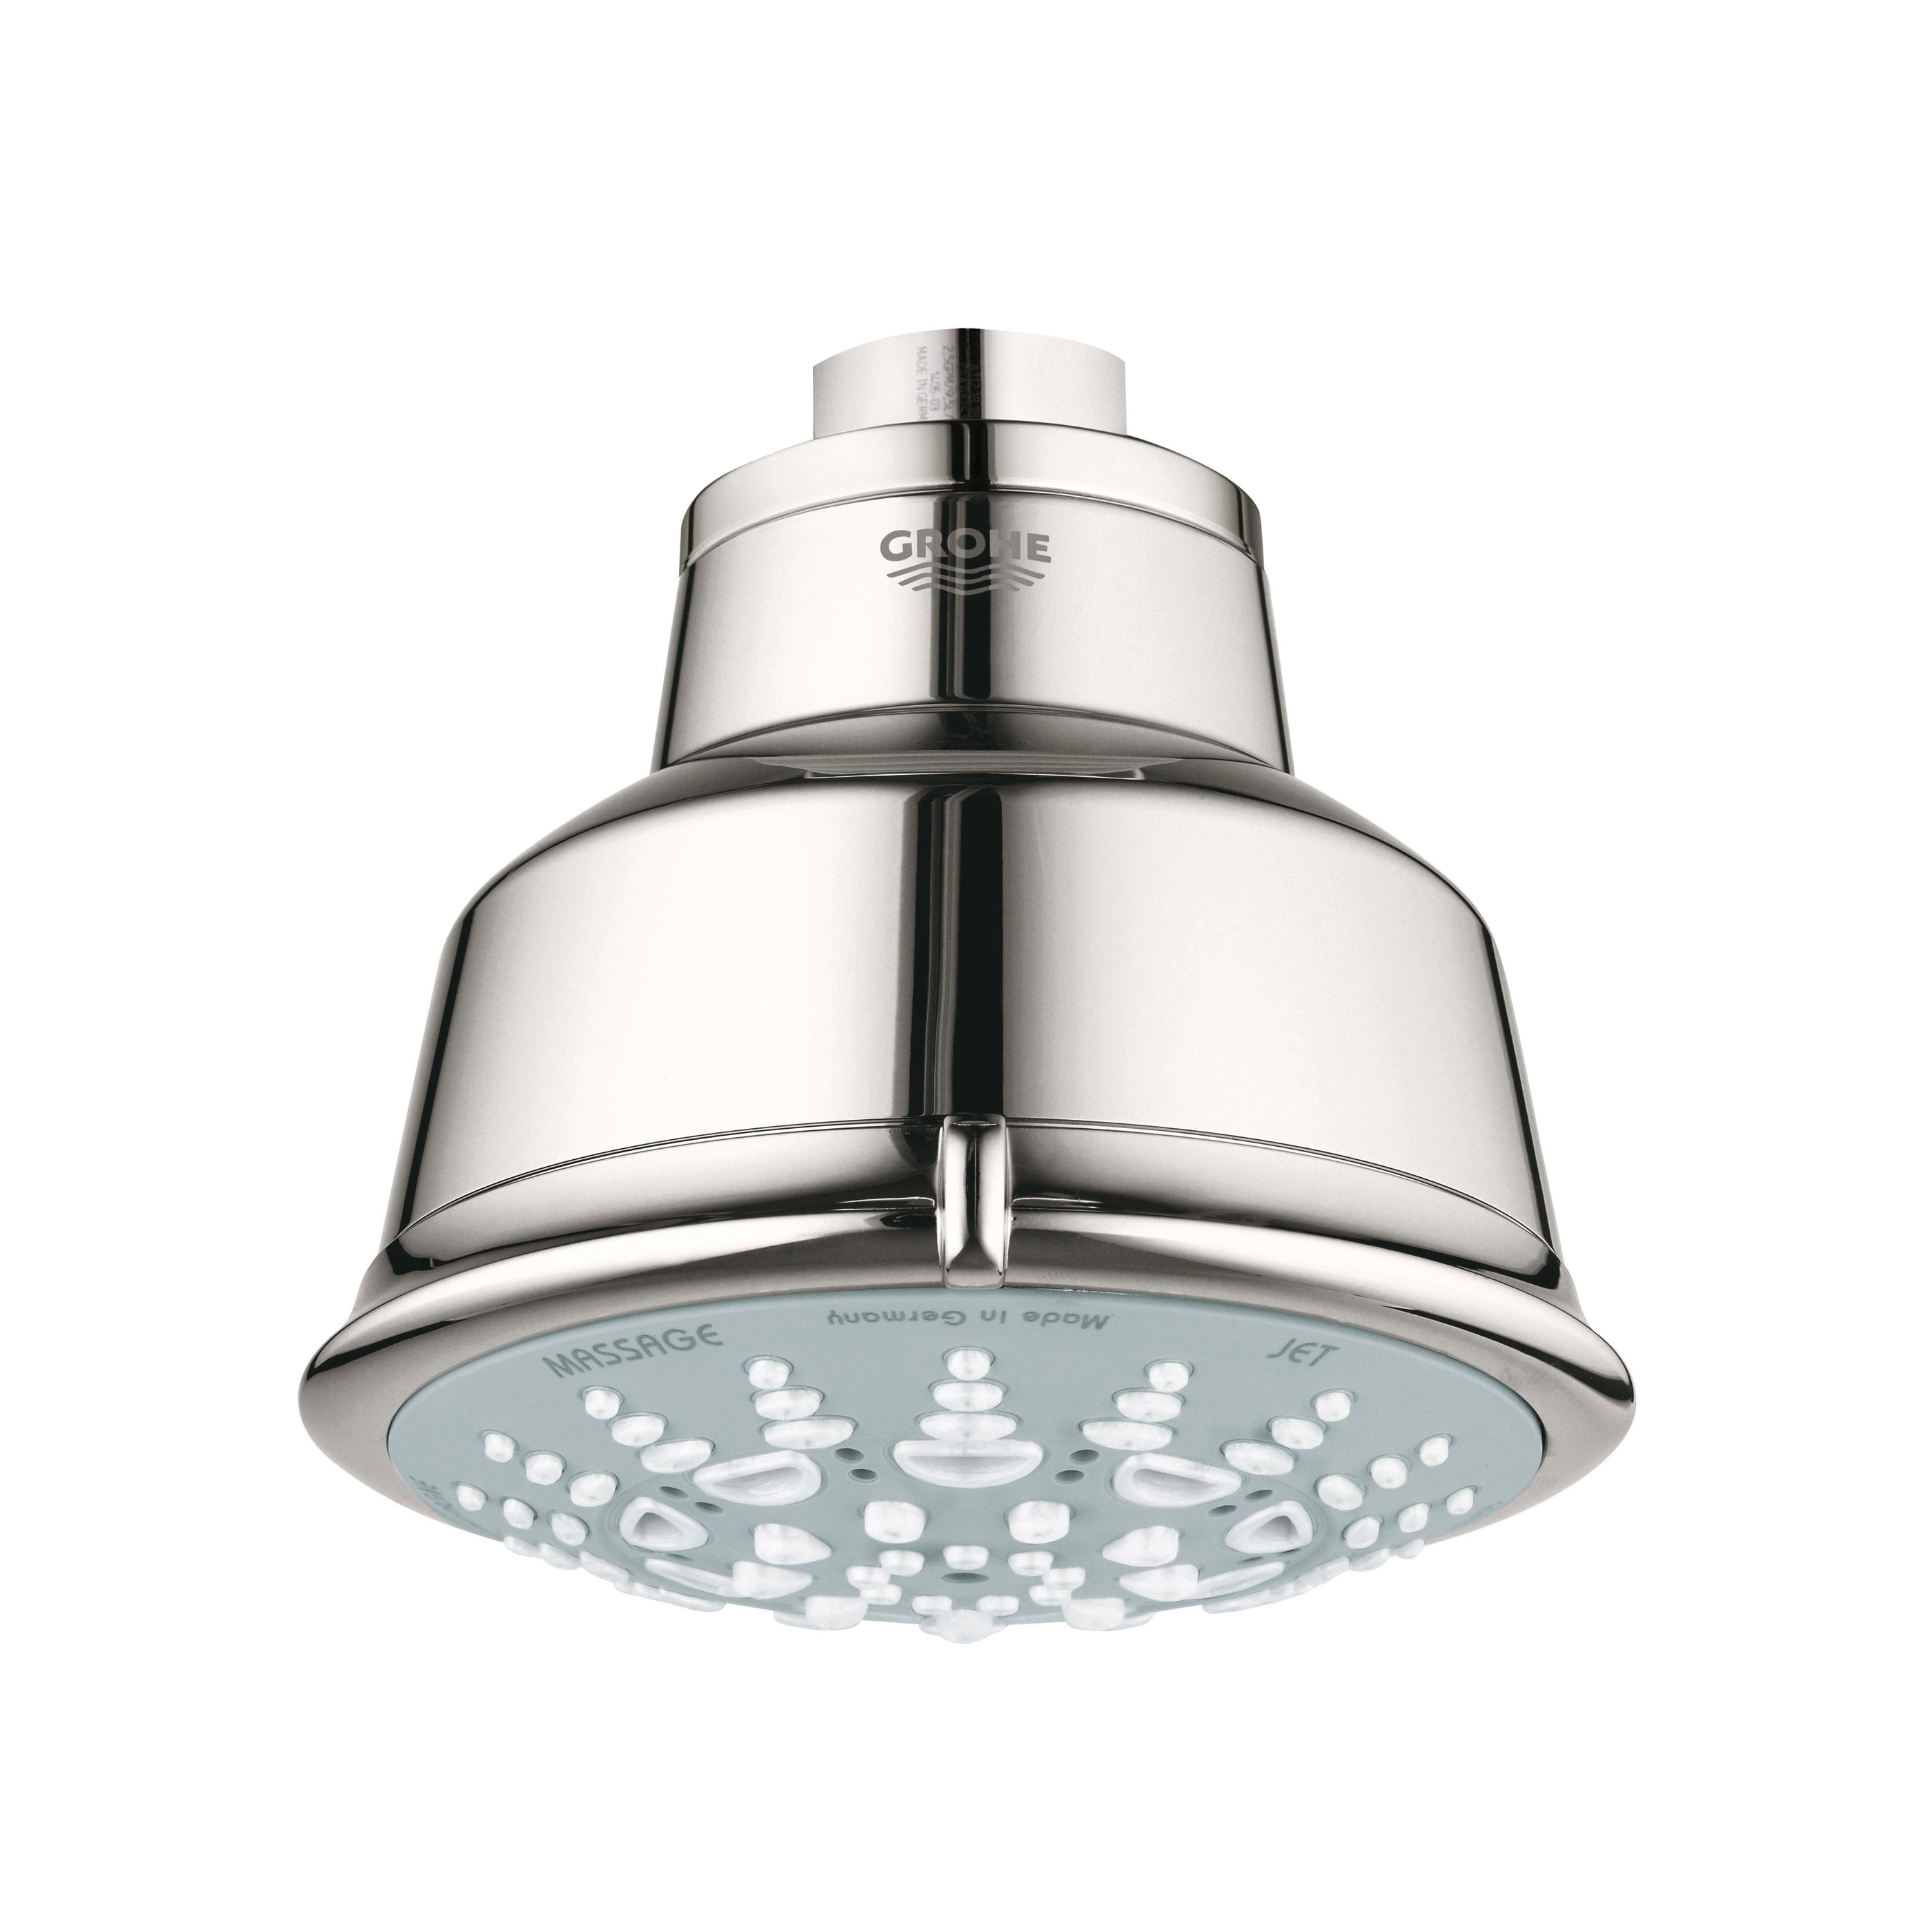 Consolidated Supply Co Grohe 27126be1 Relexa Rustic 100